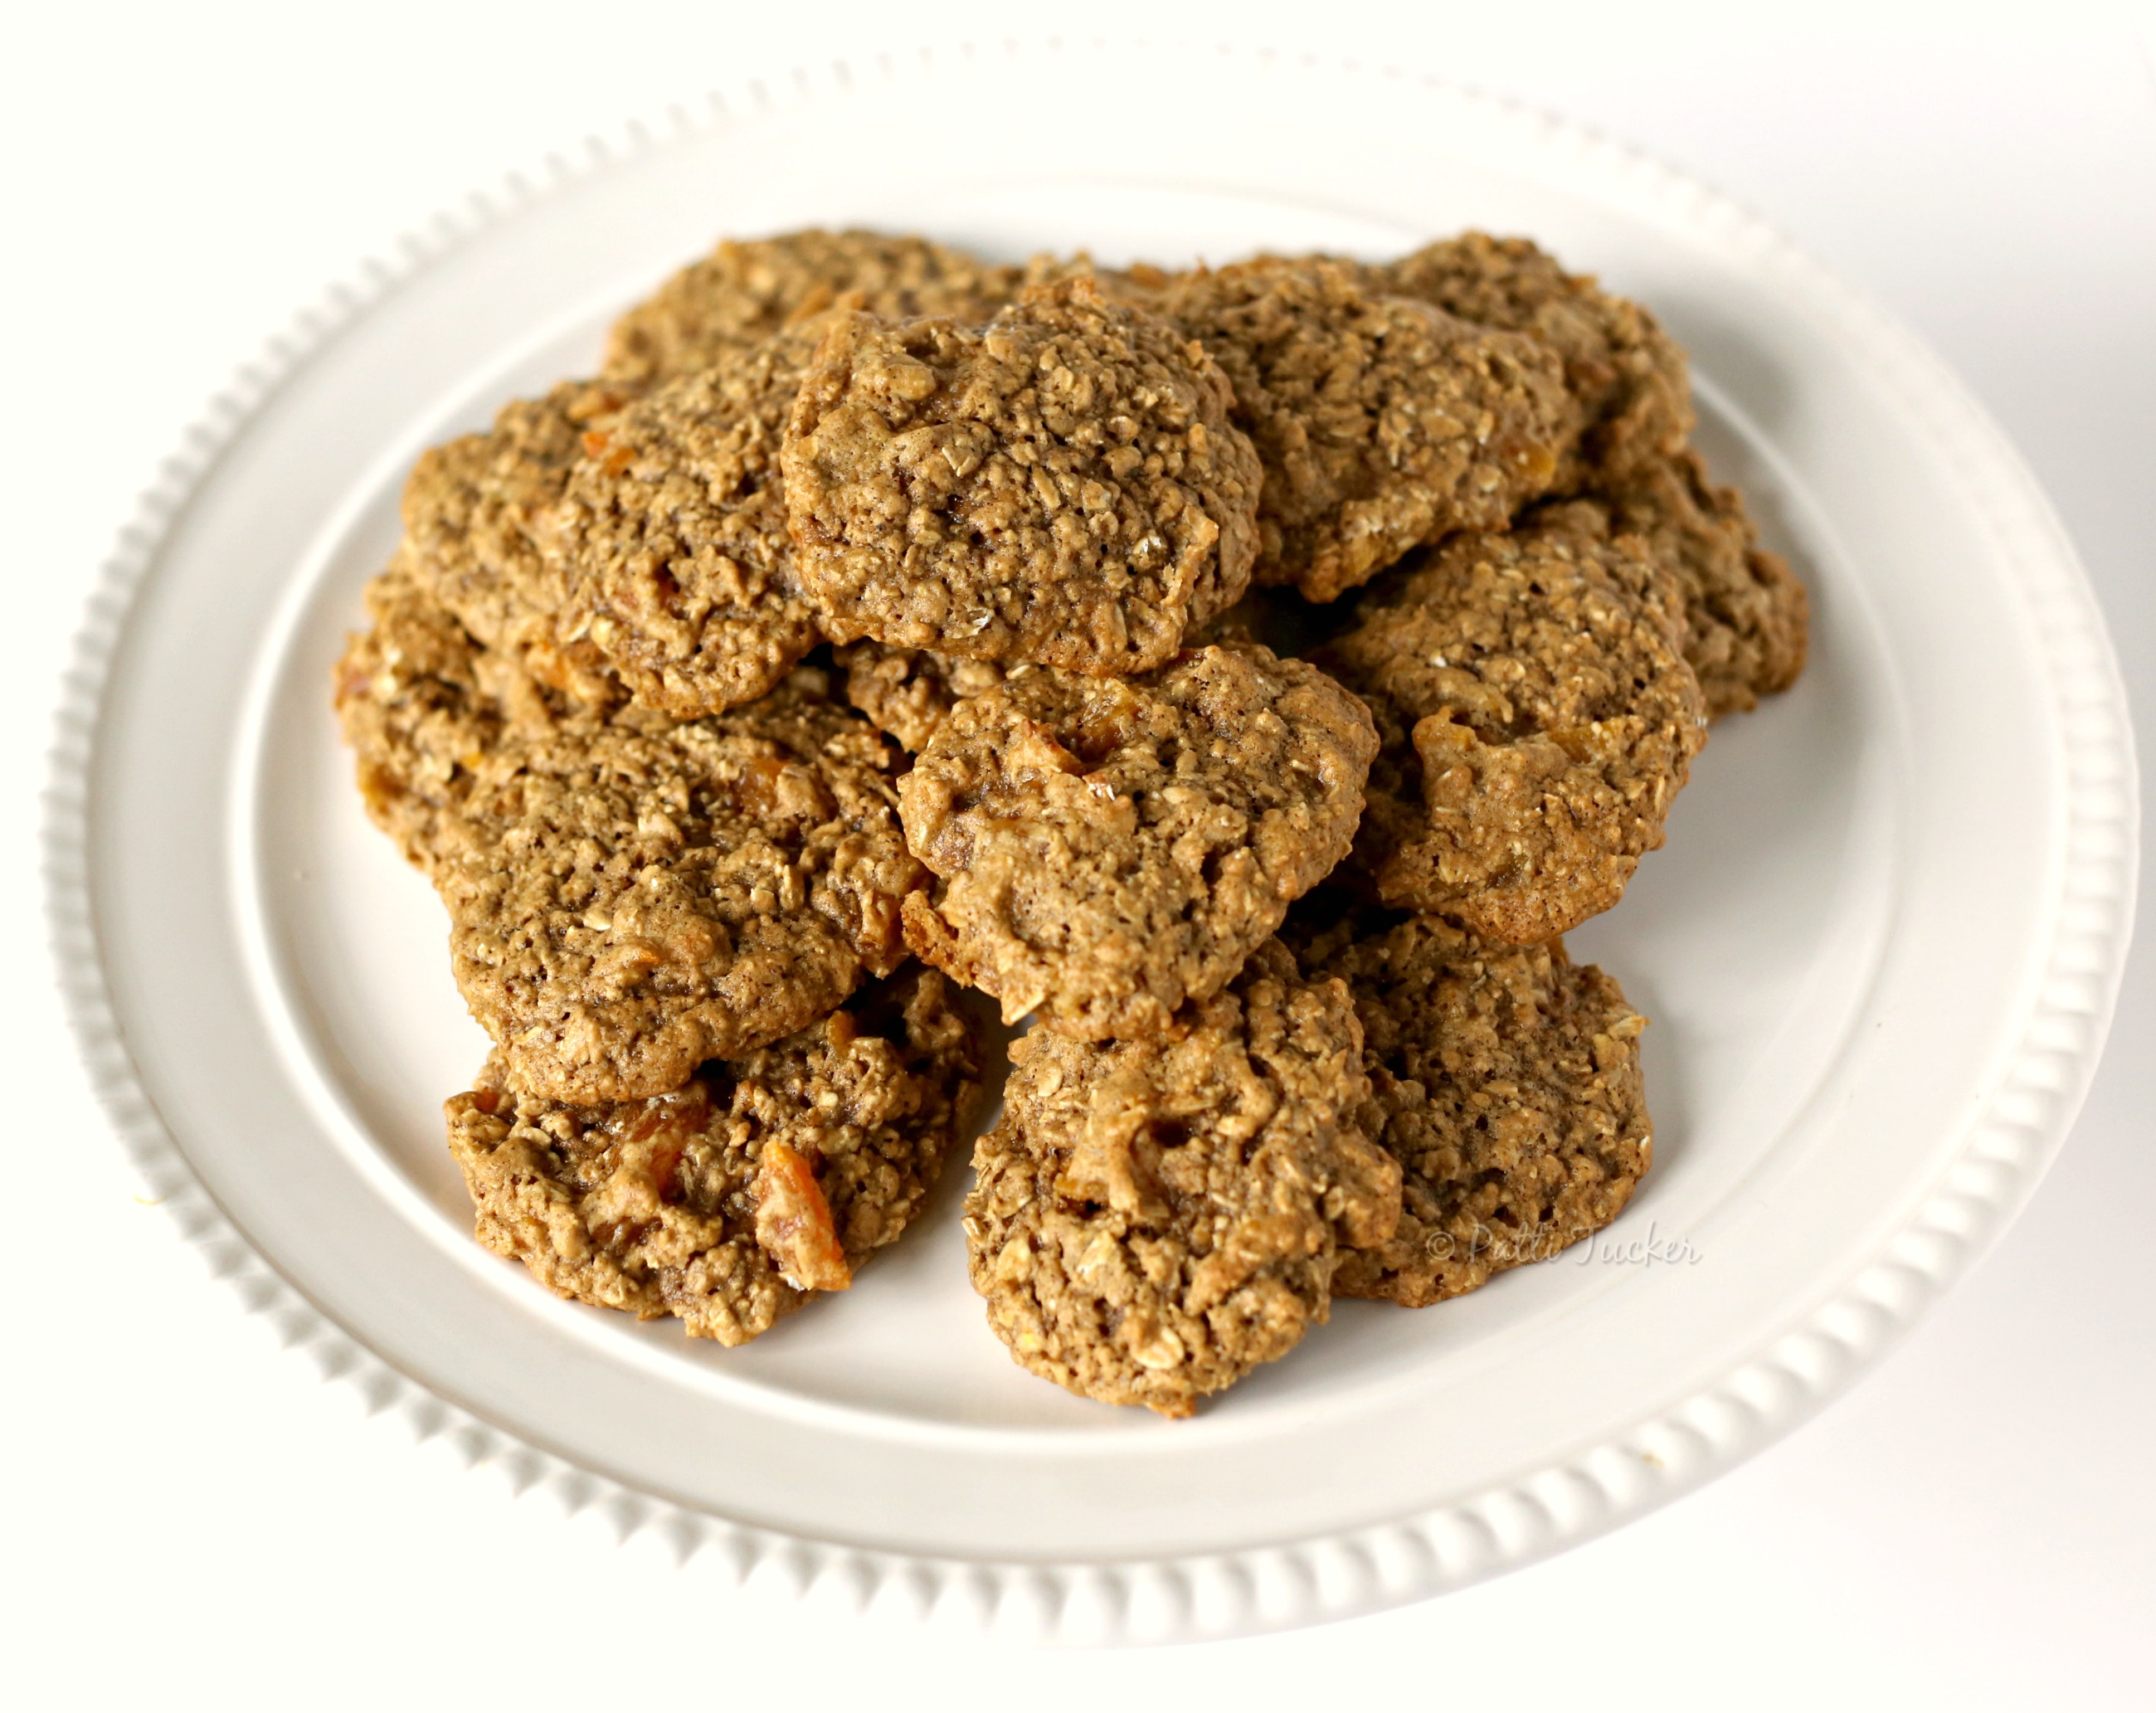 plate of oatmeal cookies